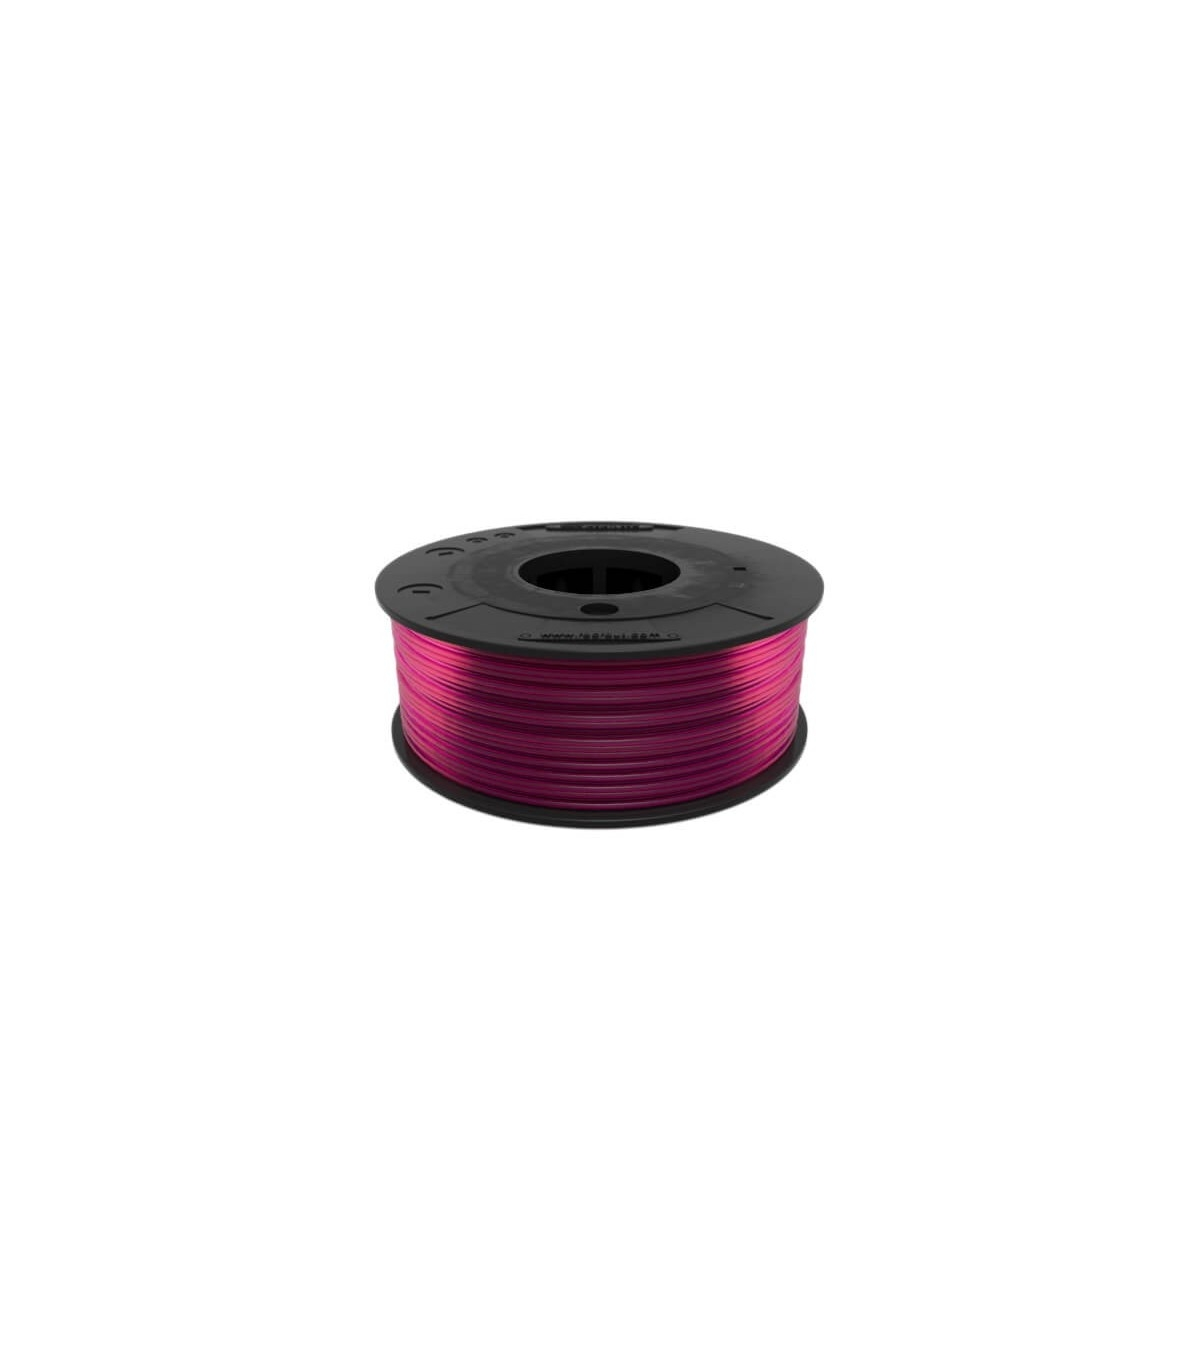 FilaFlex Clear pink 82A TPE Filament 1.75 mm 250g